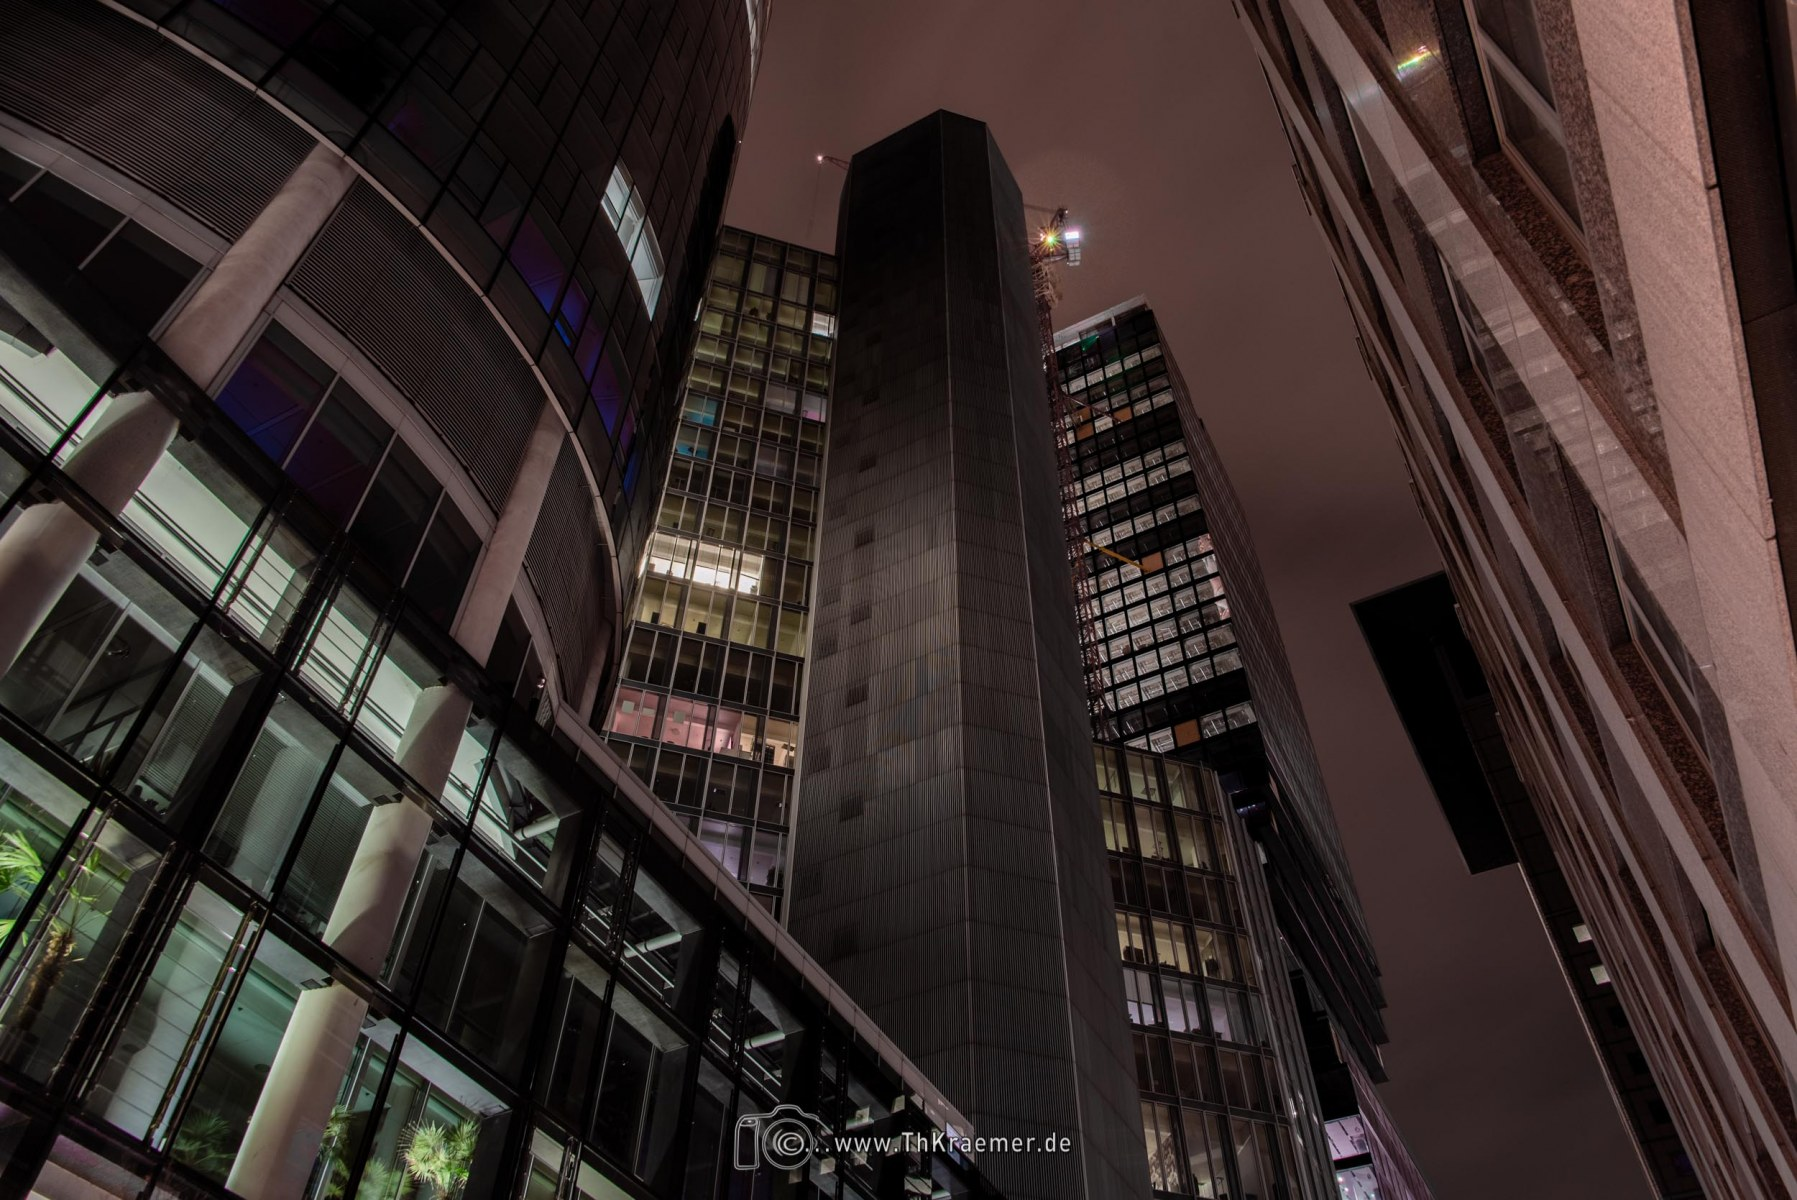 D75_2367-HDR-2